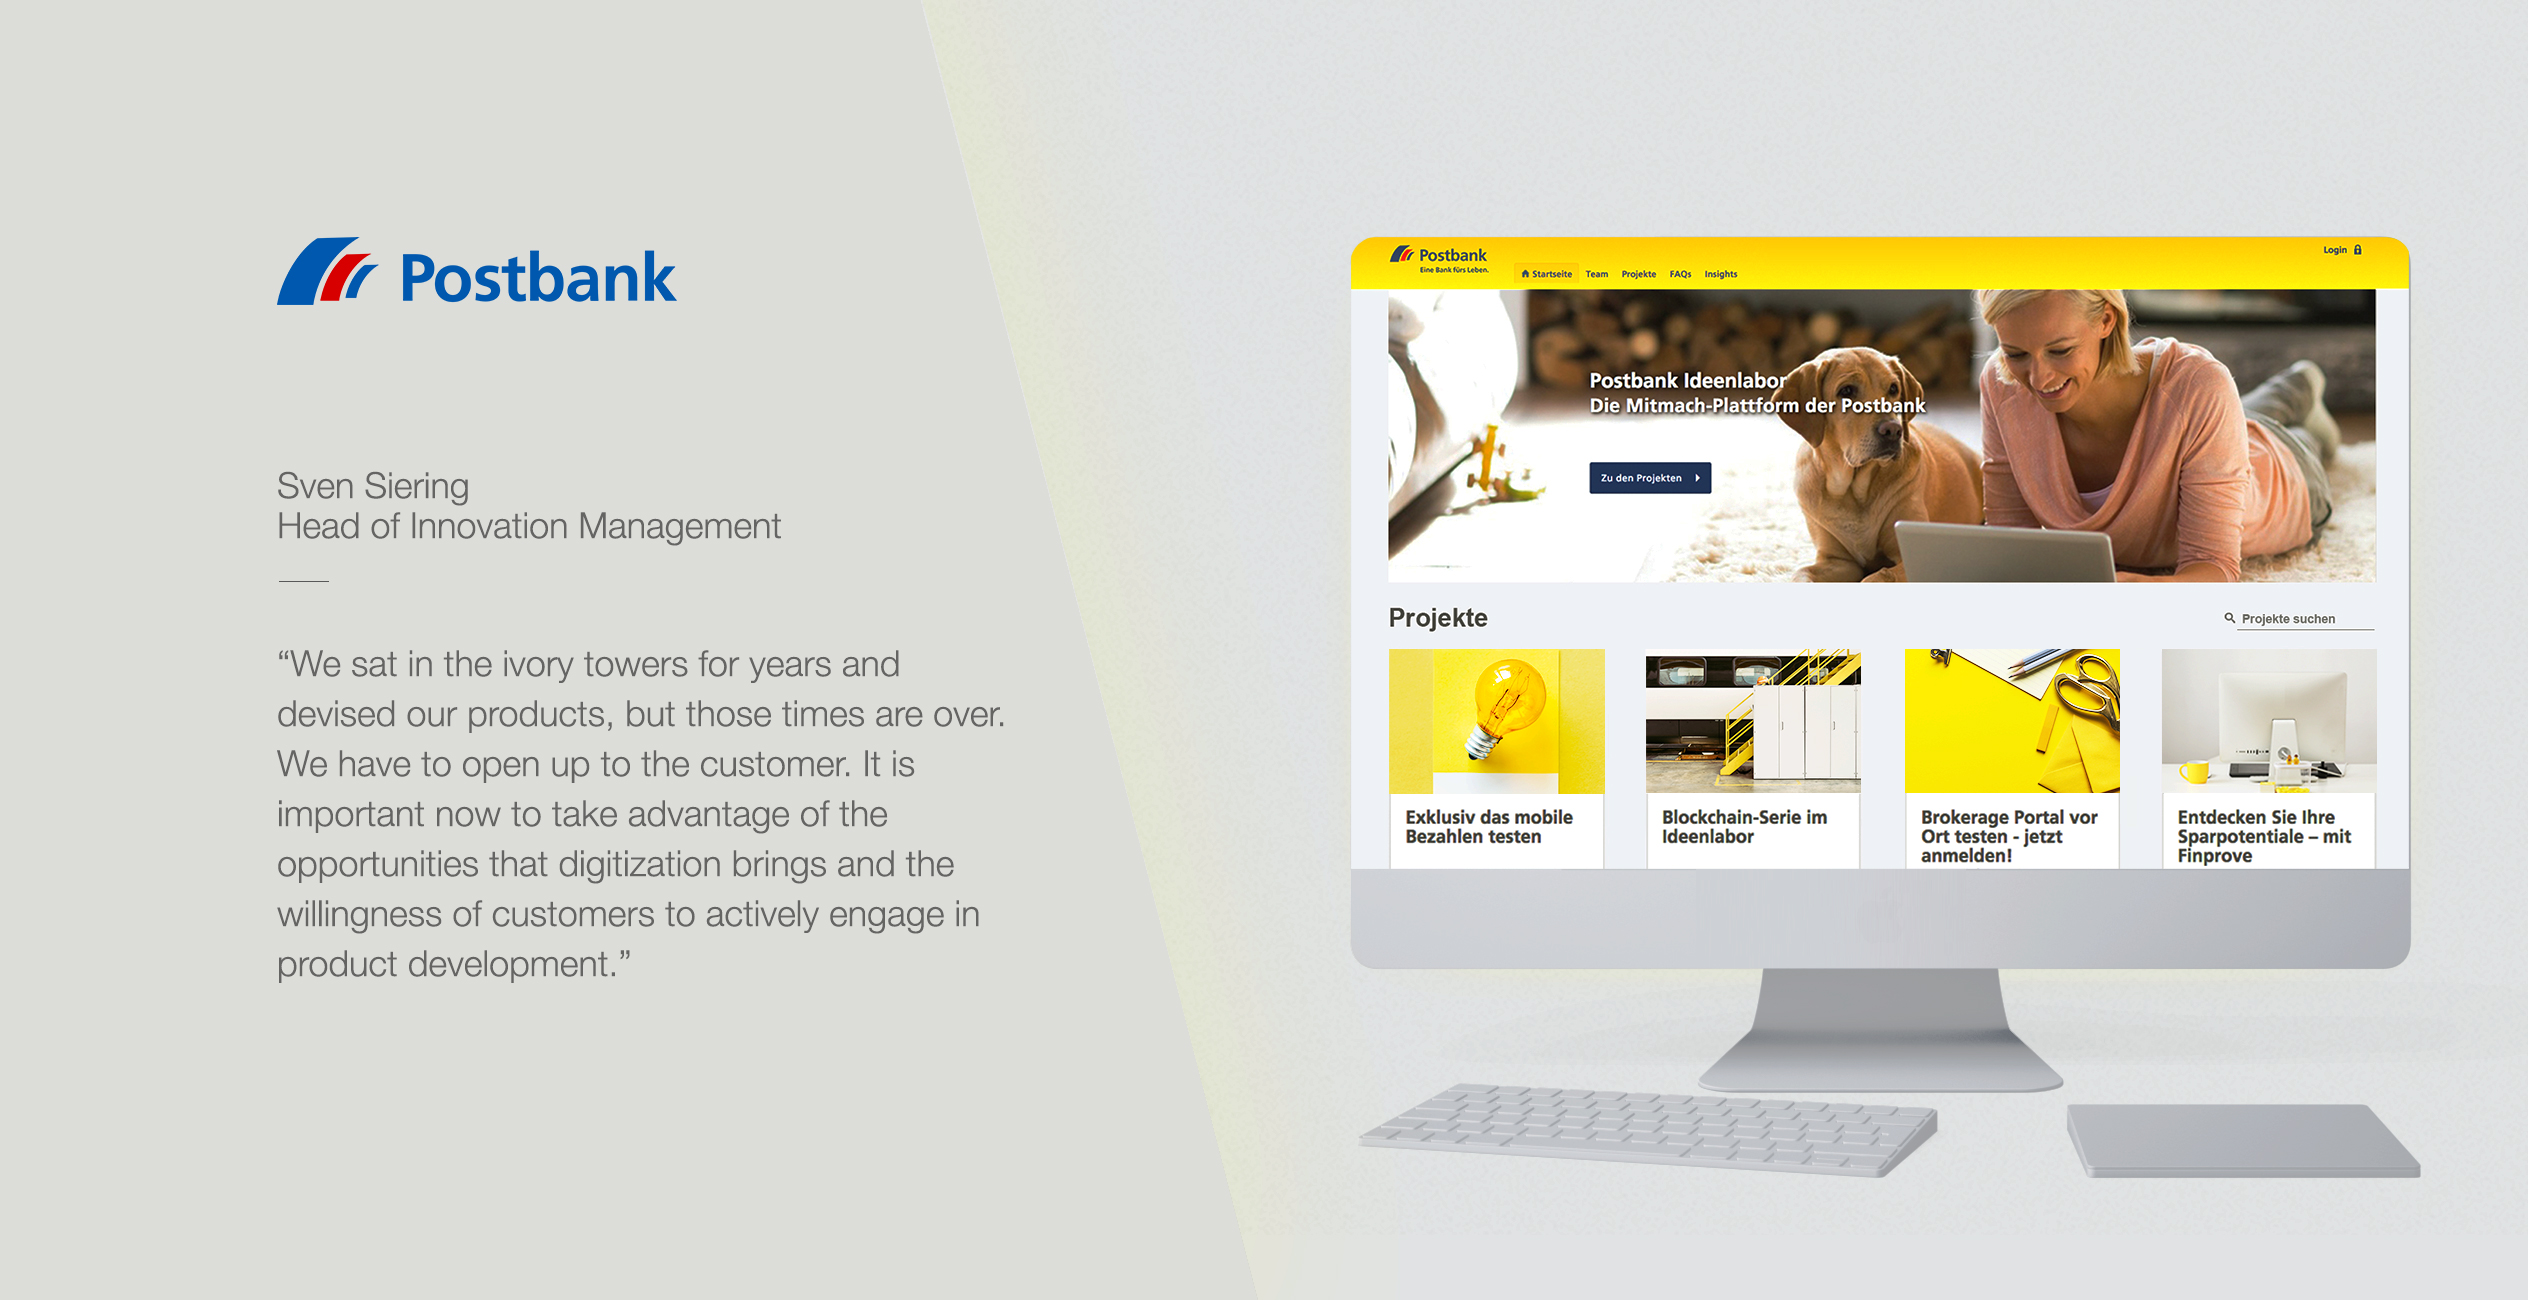 Postbank uses innosabi telescope to engage all its customers in the generation of new service ideas and the prototype testing of next-generation, digital offerings. The Ideenlabor is a home to several thousand committed customers who actively shape the future of Postbank with their ideas and feedback.